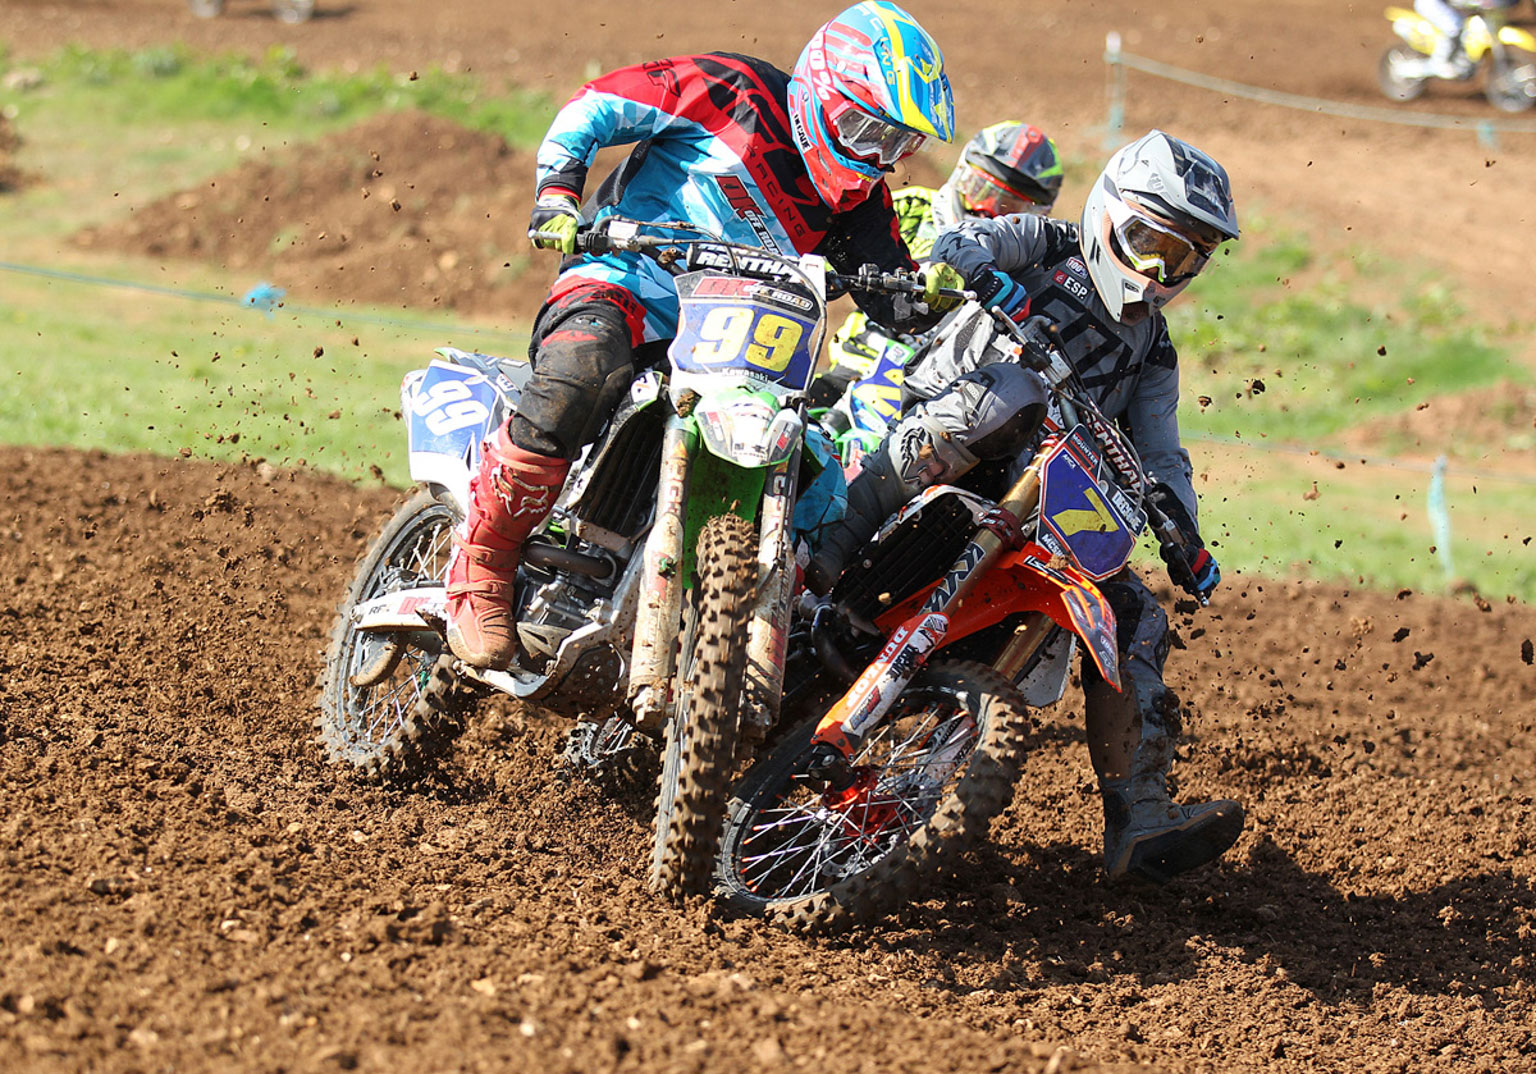 Clinton Barrs(99) and Cory McShane having a close MX2 battle